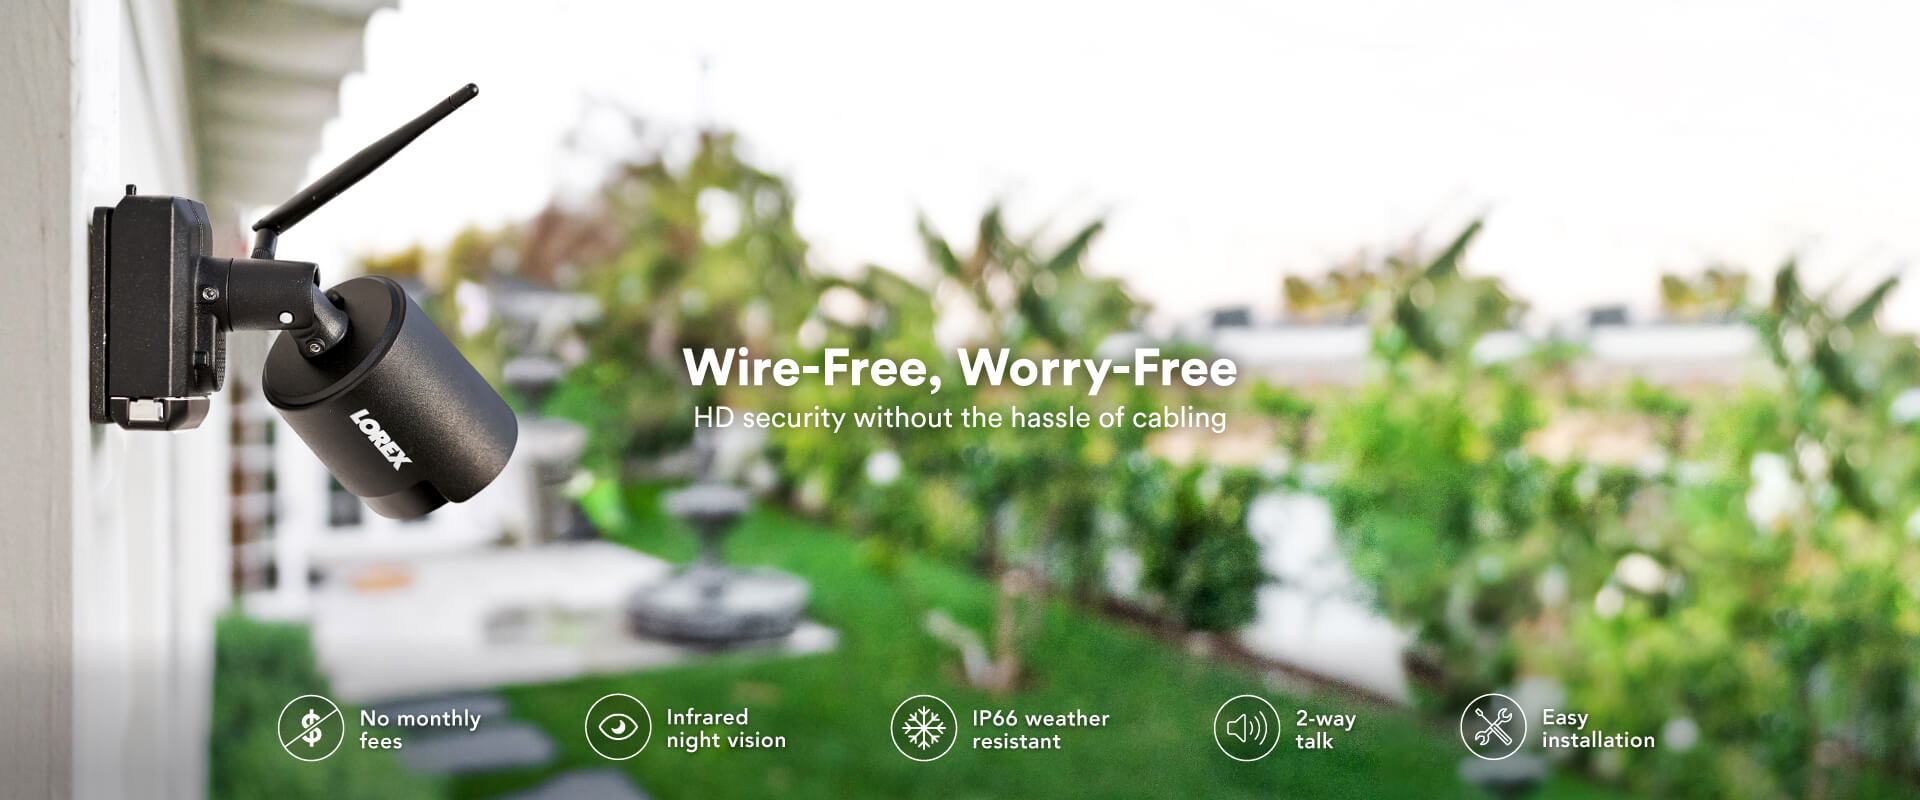 Lorex Technology Reviews - HD Wire-Free Security Camera Systems